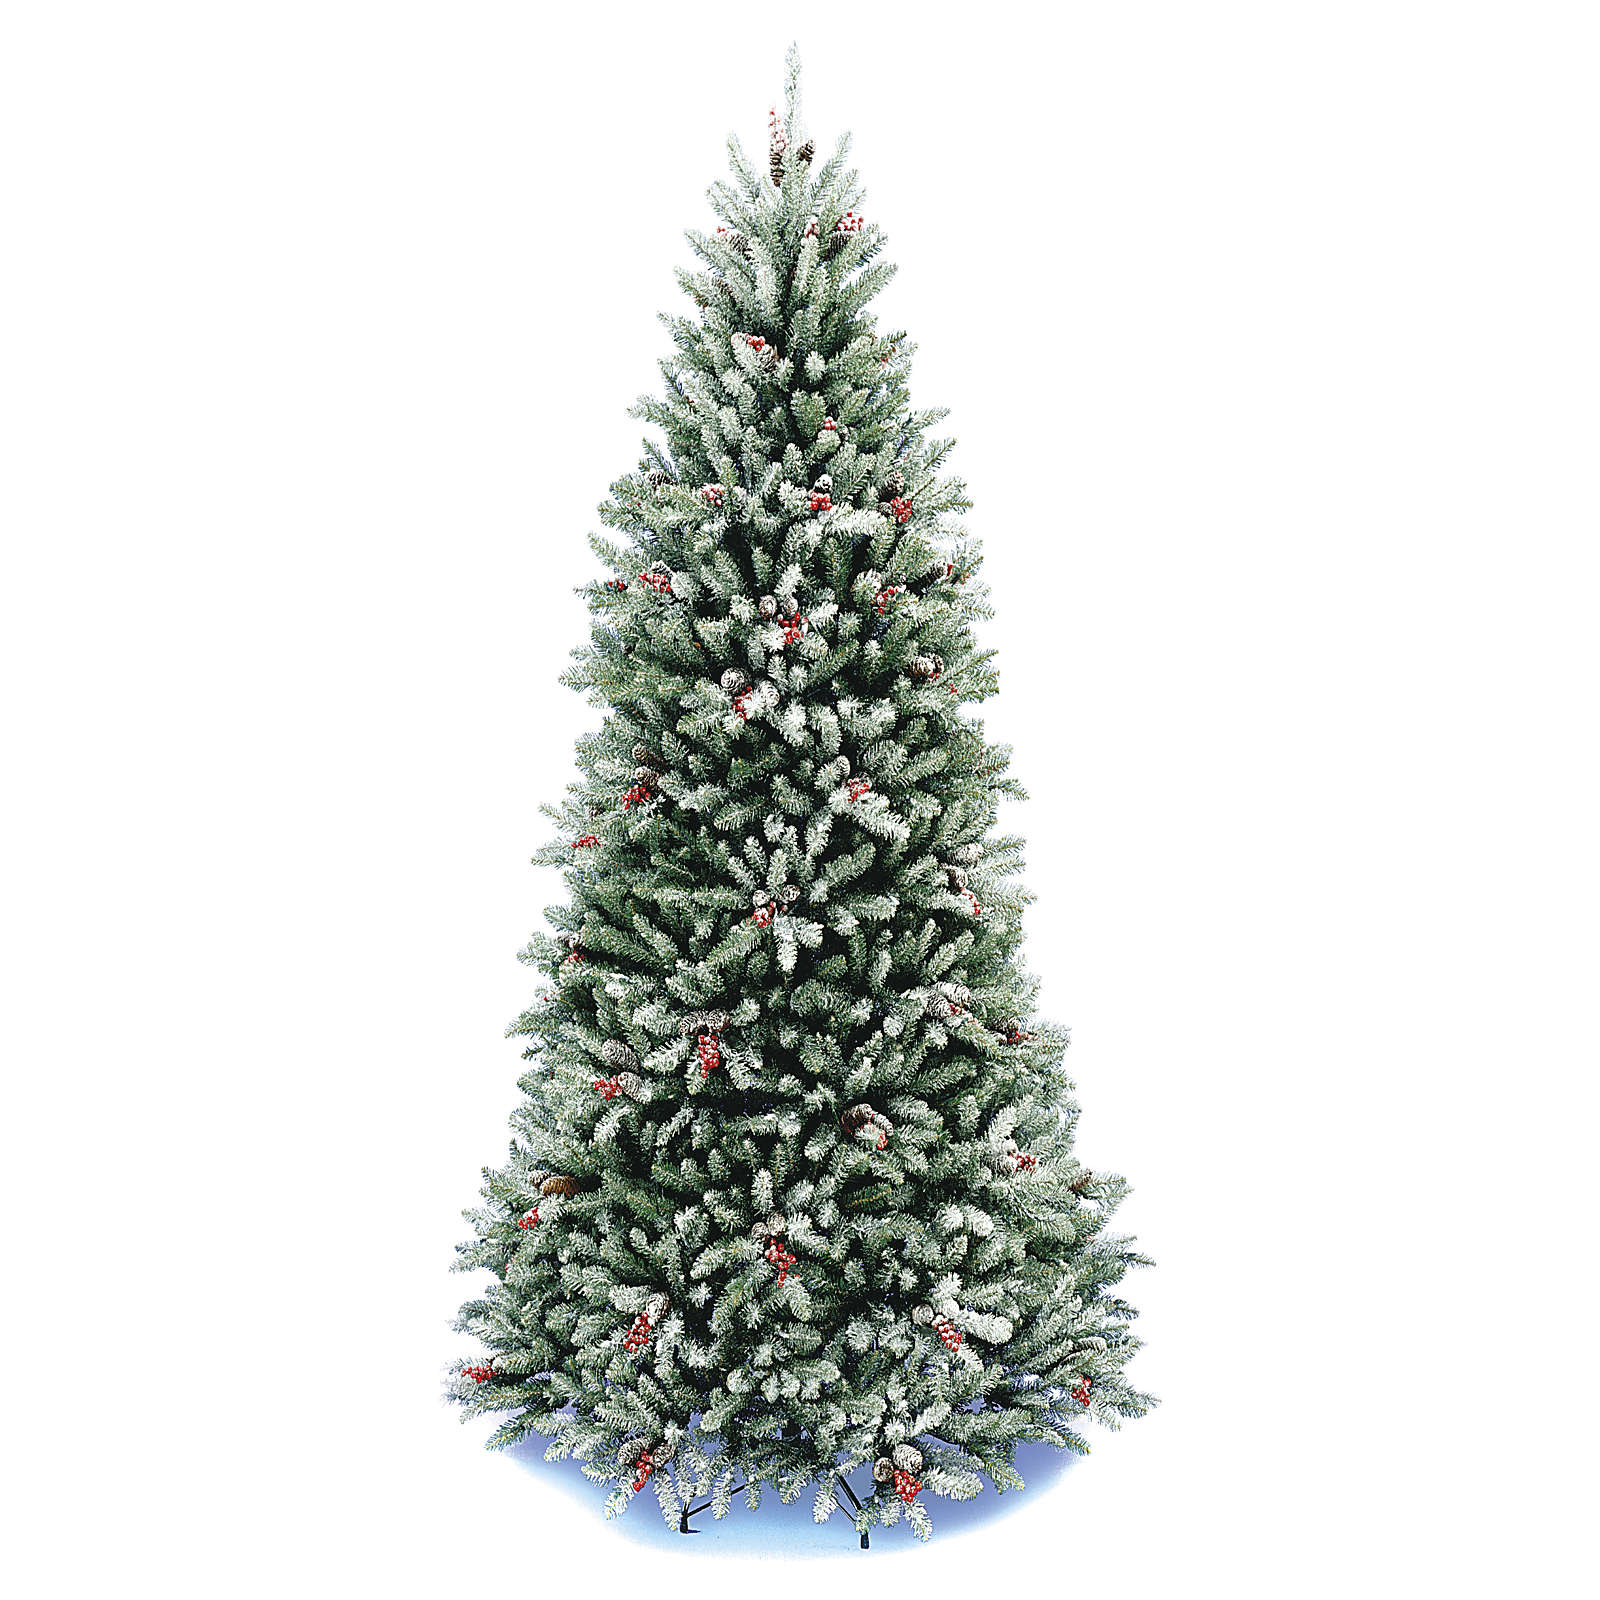 Christmas Tree With Pine Cones And Berries: Slim Christmas Tree 180 Cm, Flocked Dunhill With Pine